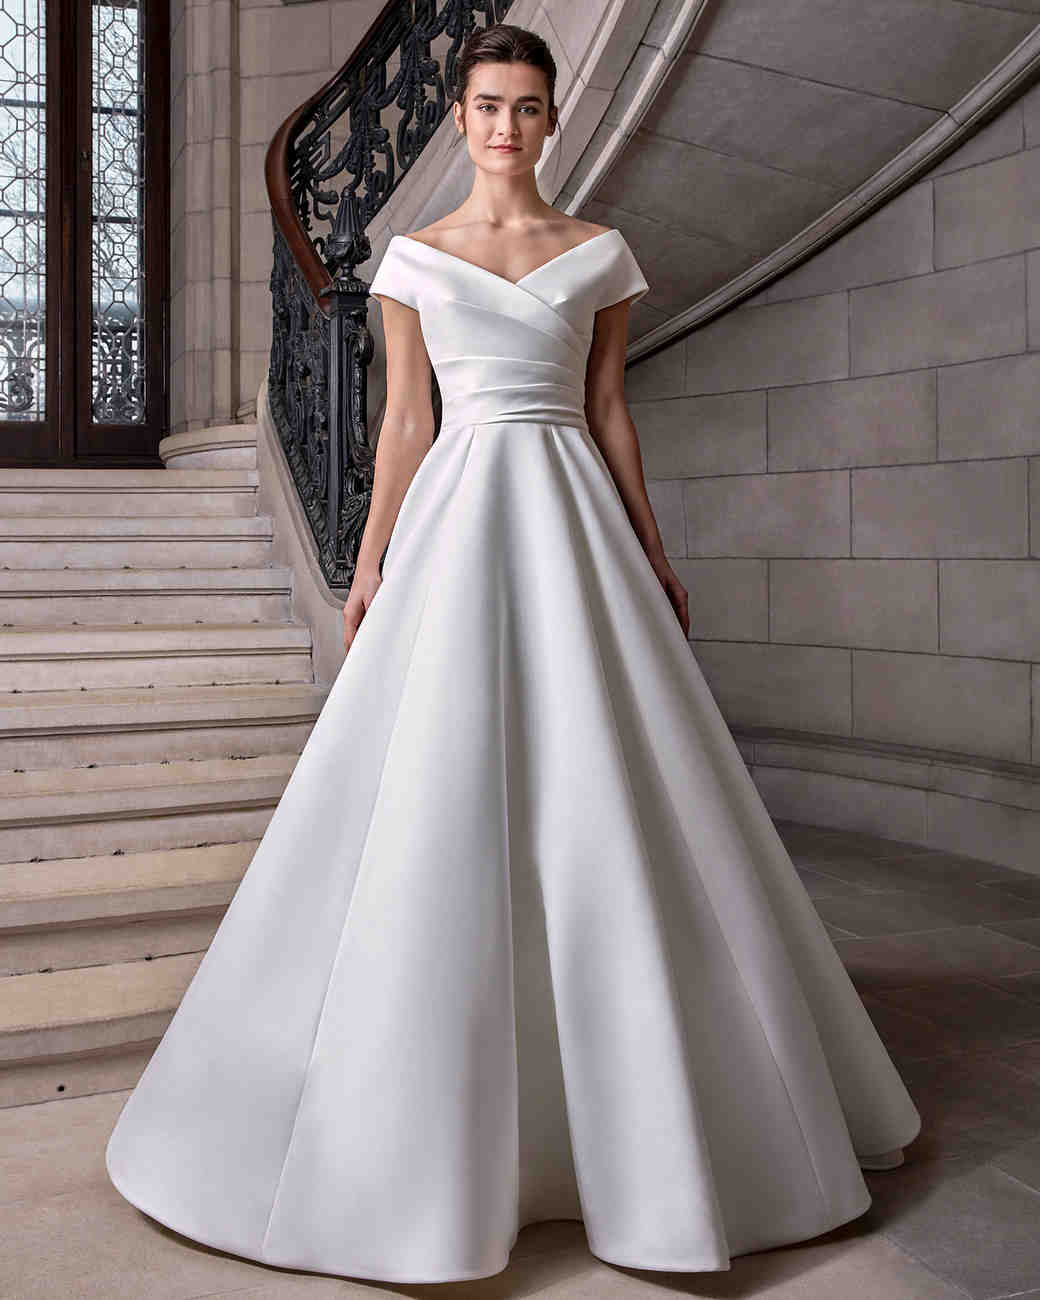 sareh nouri off the shoulder ball gown wedding dress spring 2020